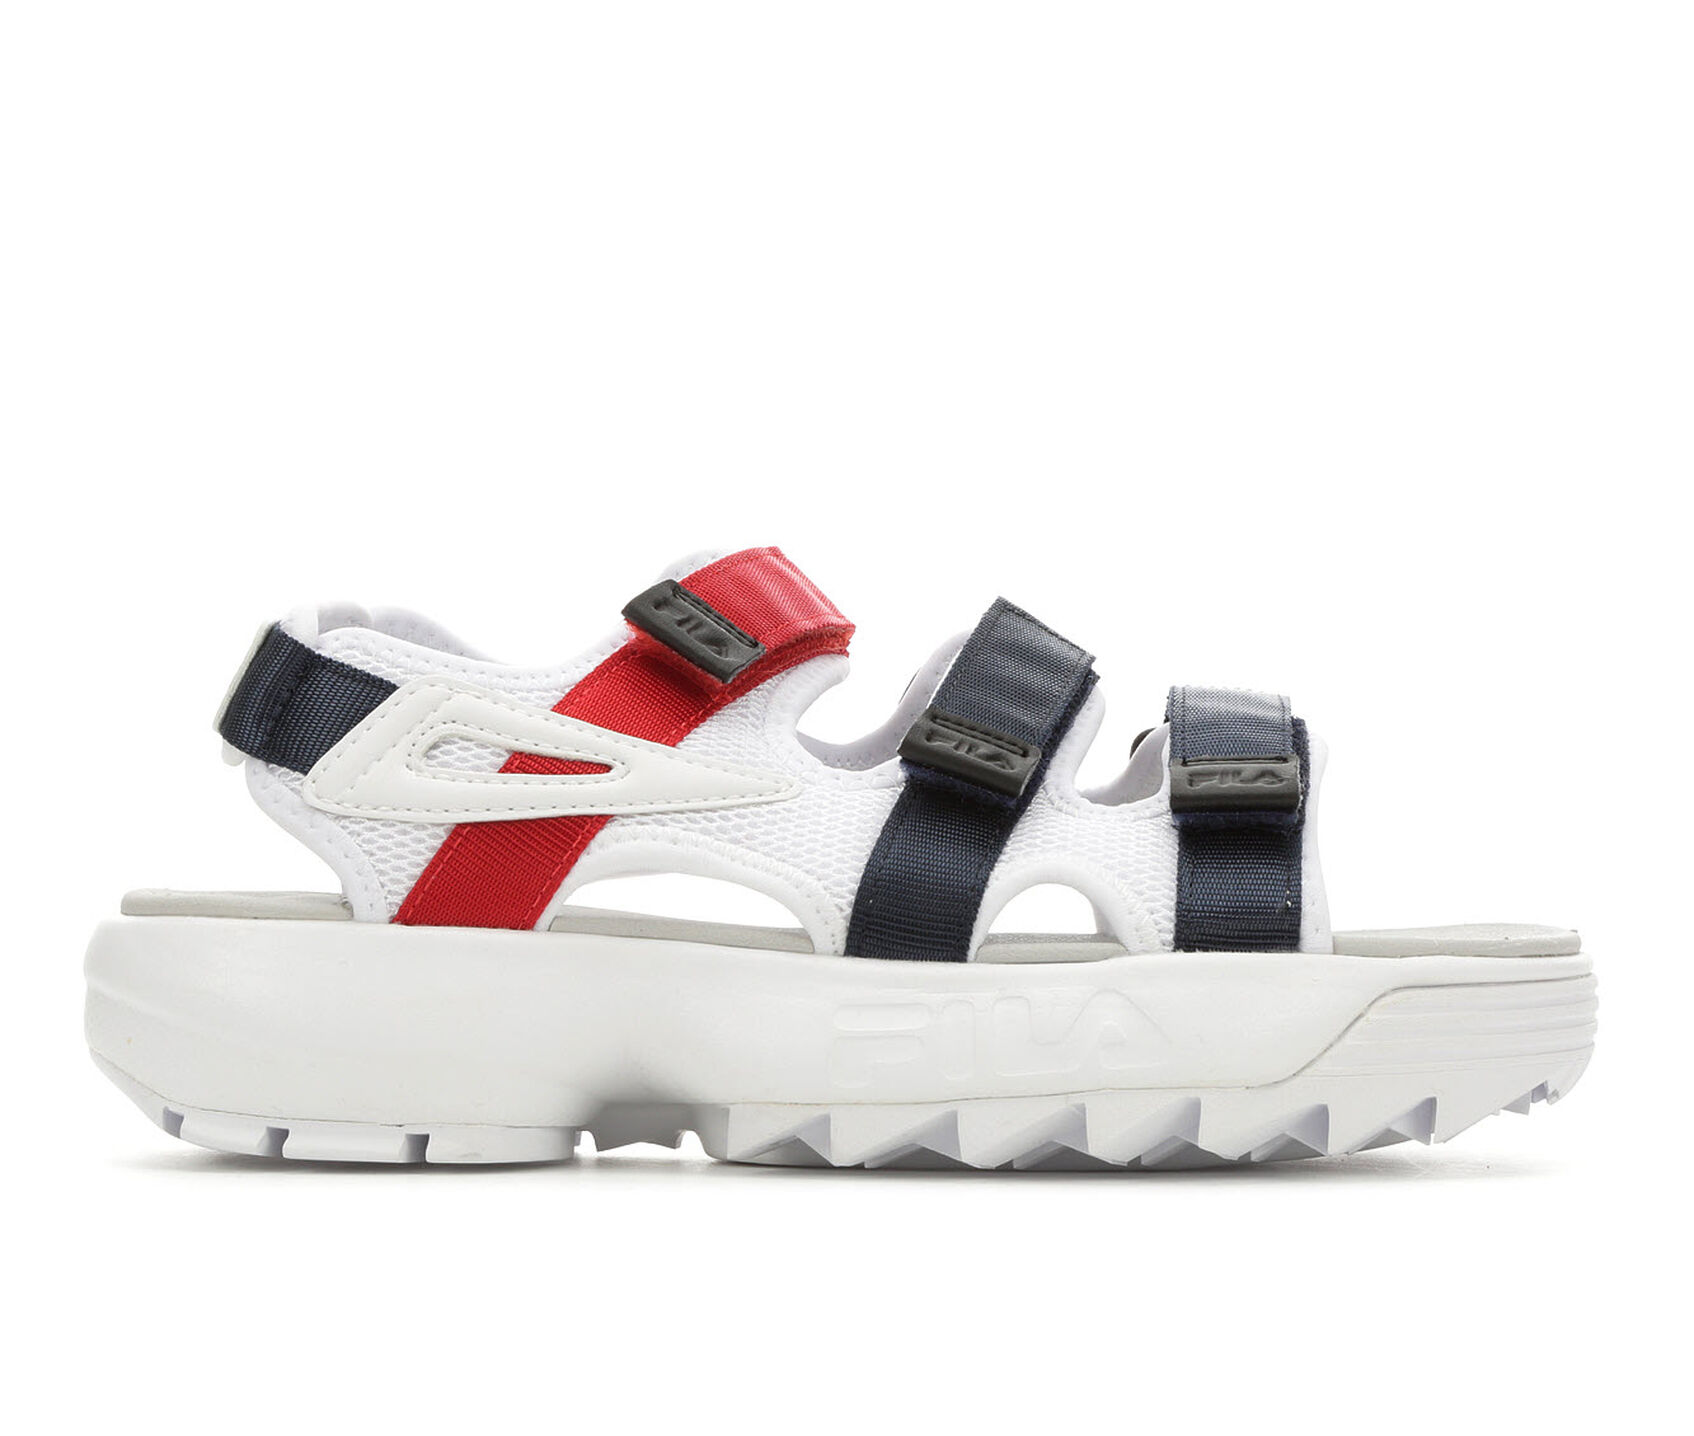 c4ddee8d31f ... Fila Disruptor Sandal Sport Sandals. Previous